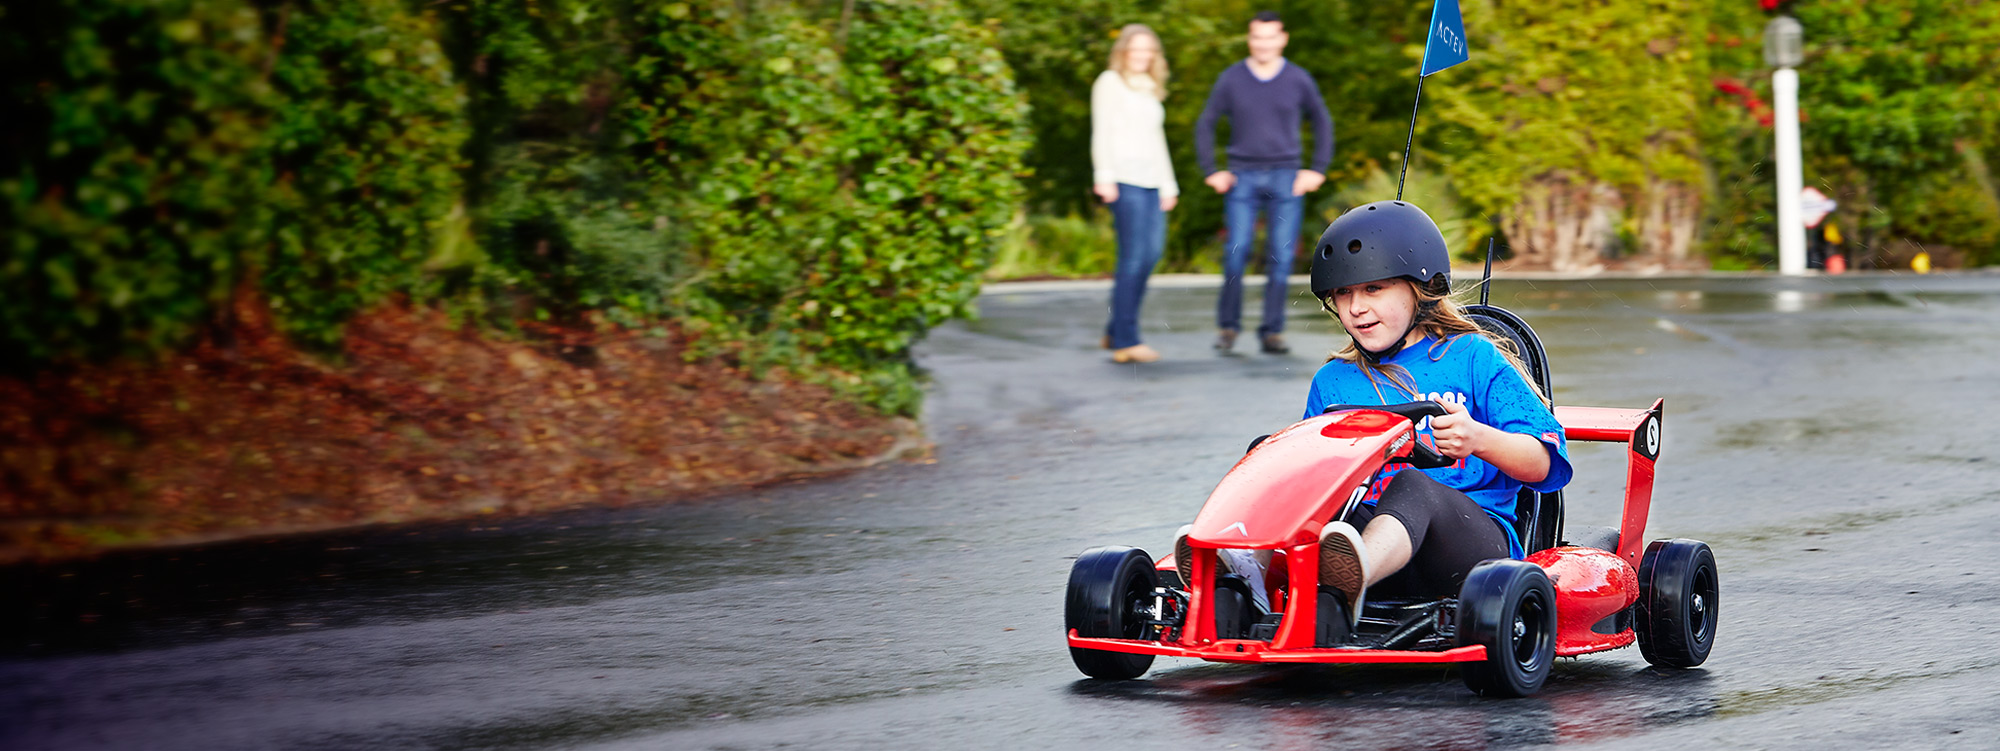 Actev Arrow – the First 'Smart-Kart' For Kids